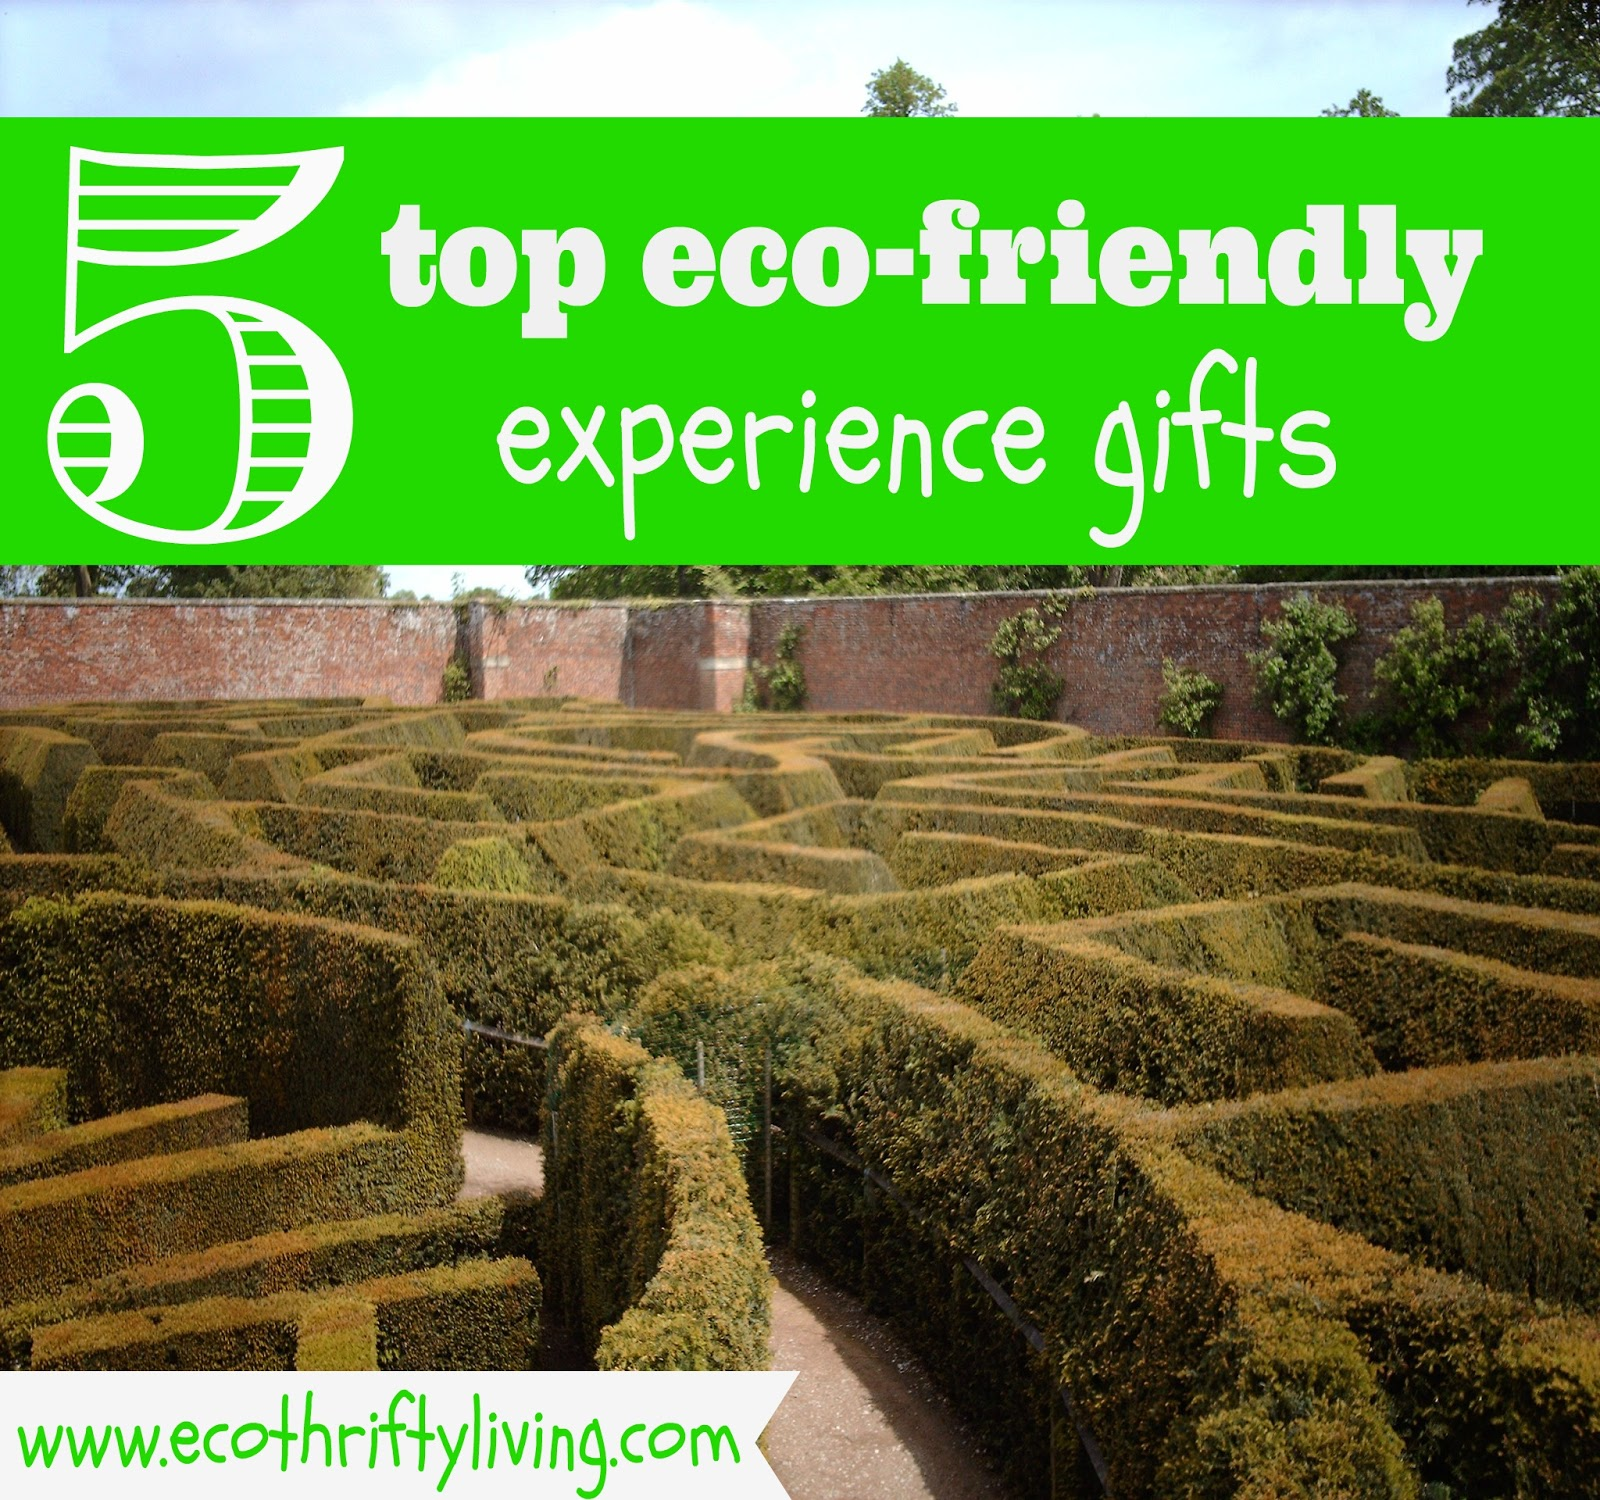 5 top eco-friendly experience gifts for families and couples this ...